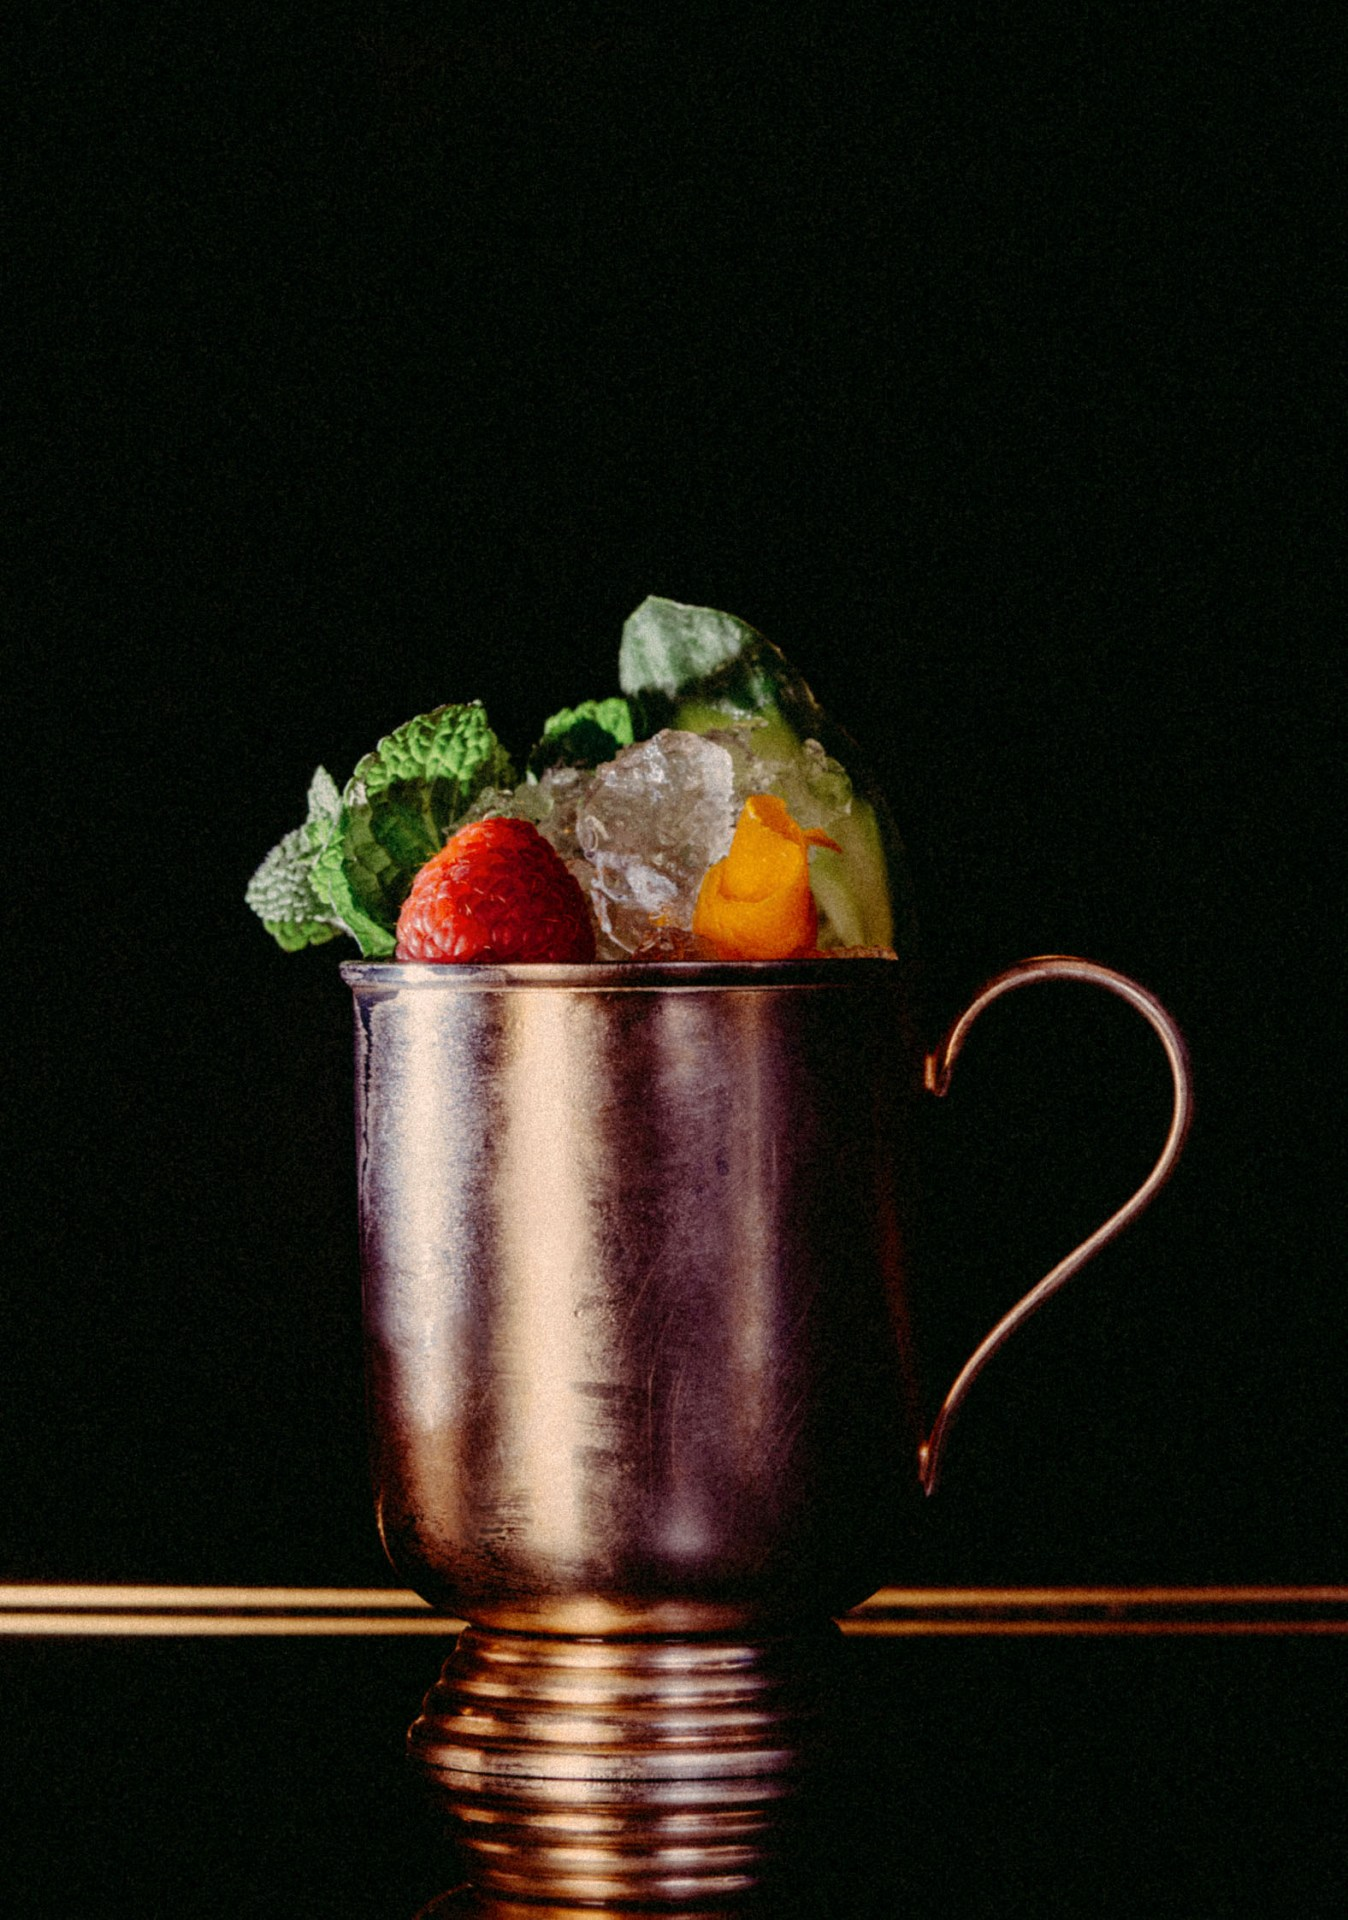 Recipe: 4cl Pimm's Cucumber Lime Filled with Perrier-Jouët Brut